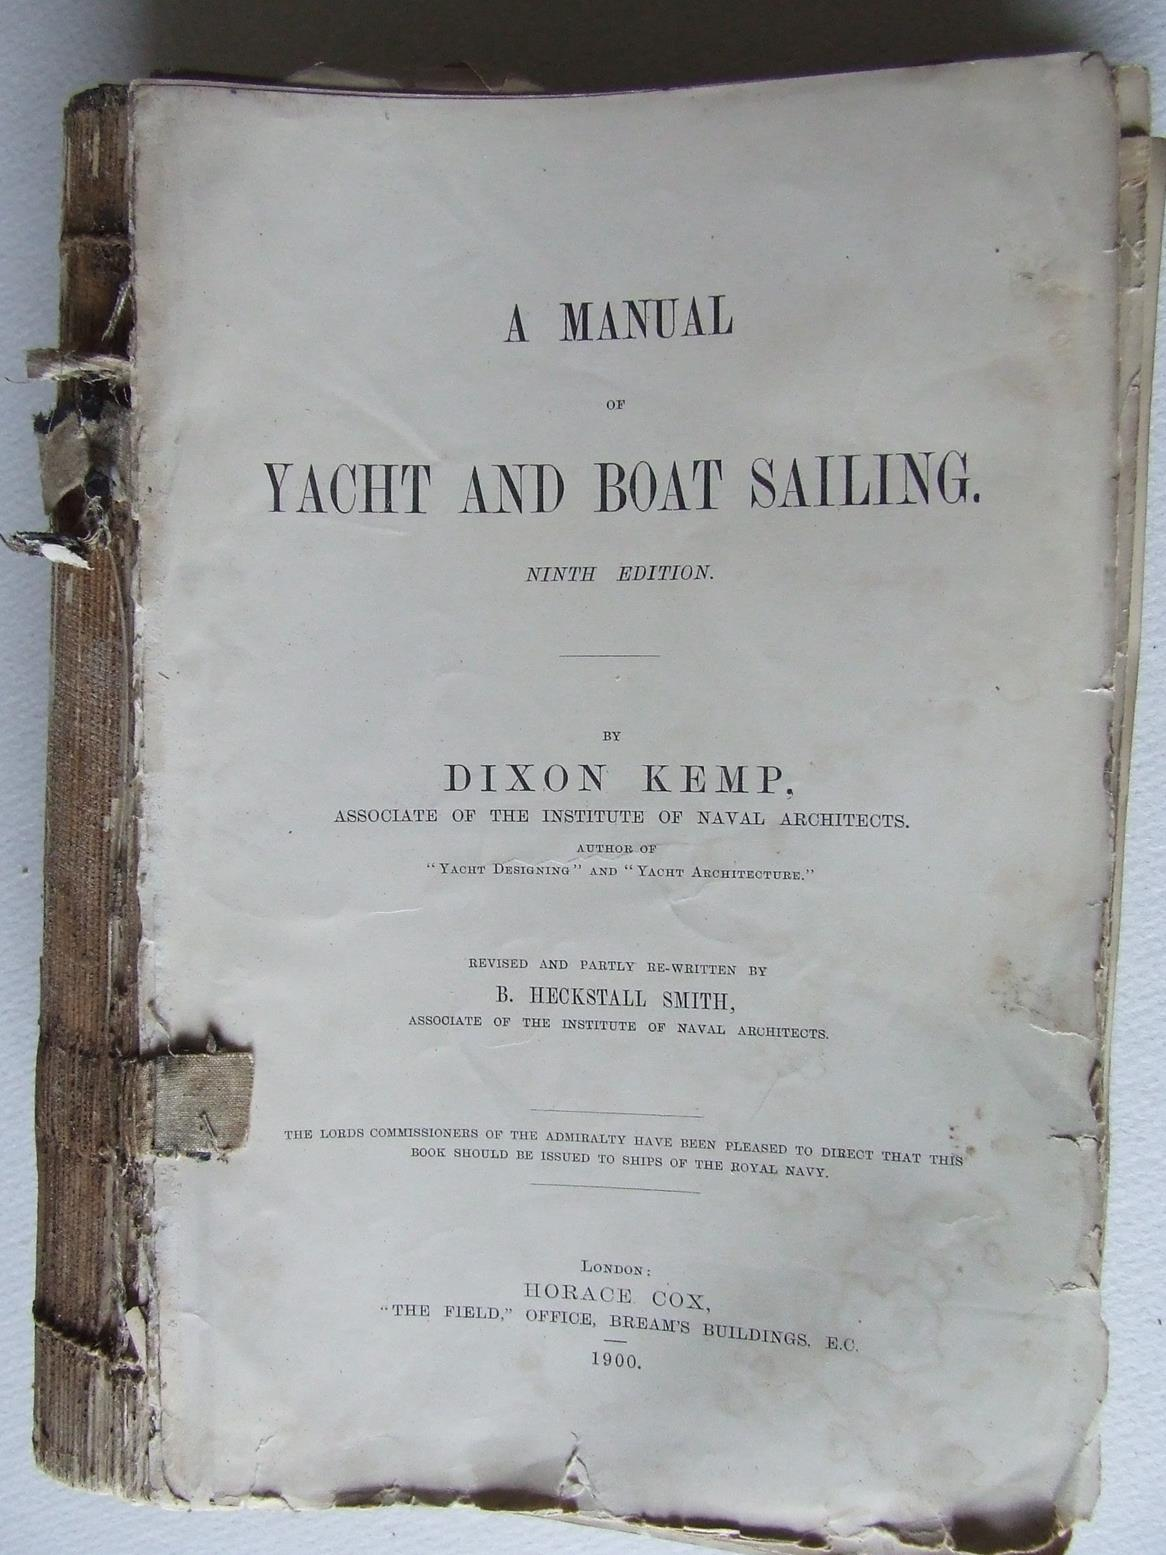 Manual of Yacht and Boat Sailing.  ninth edition.